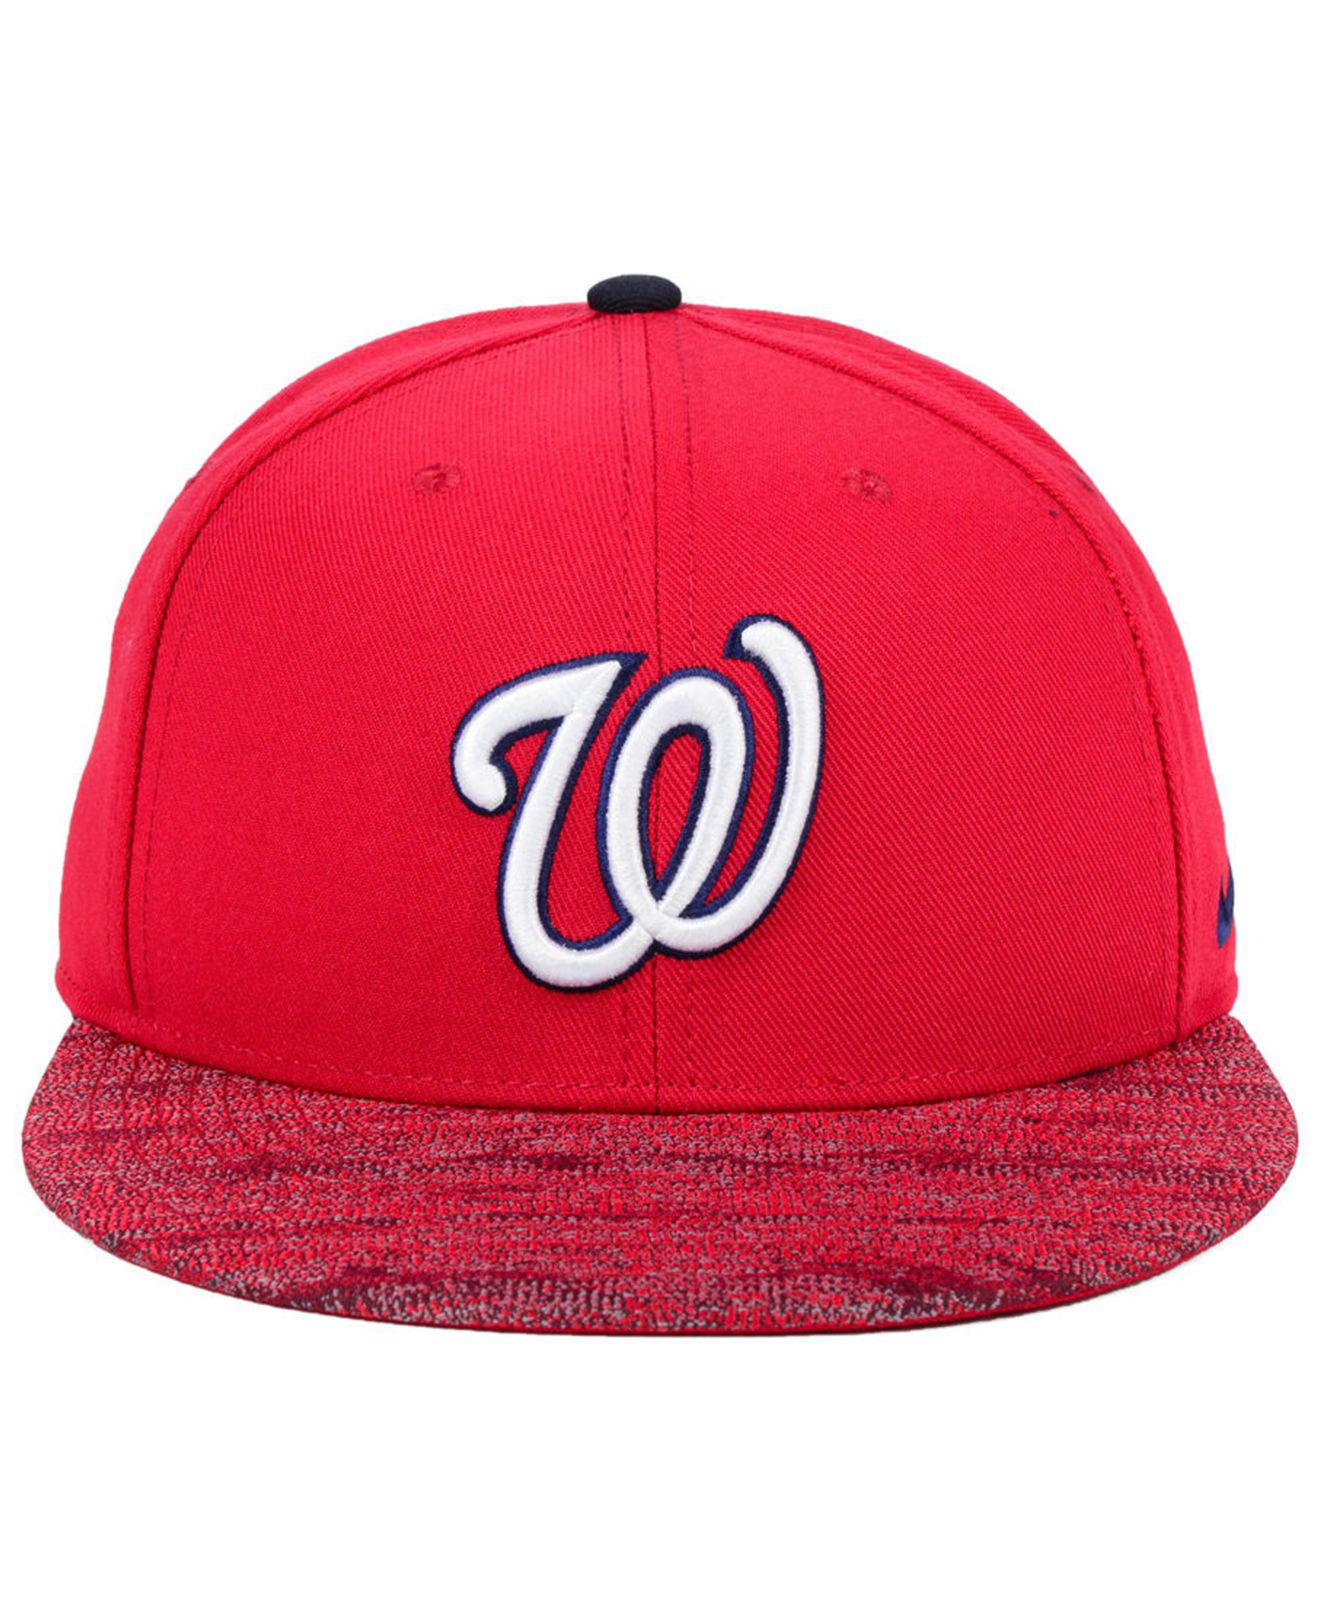 01e5ea6cc84fb Lyst - Nike Washington Nationals Reverse New Day Snapback Cap in Red for Men